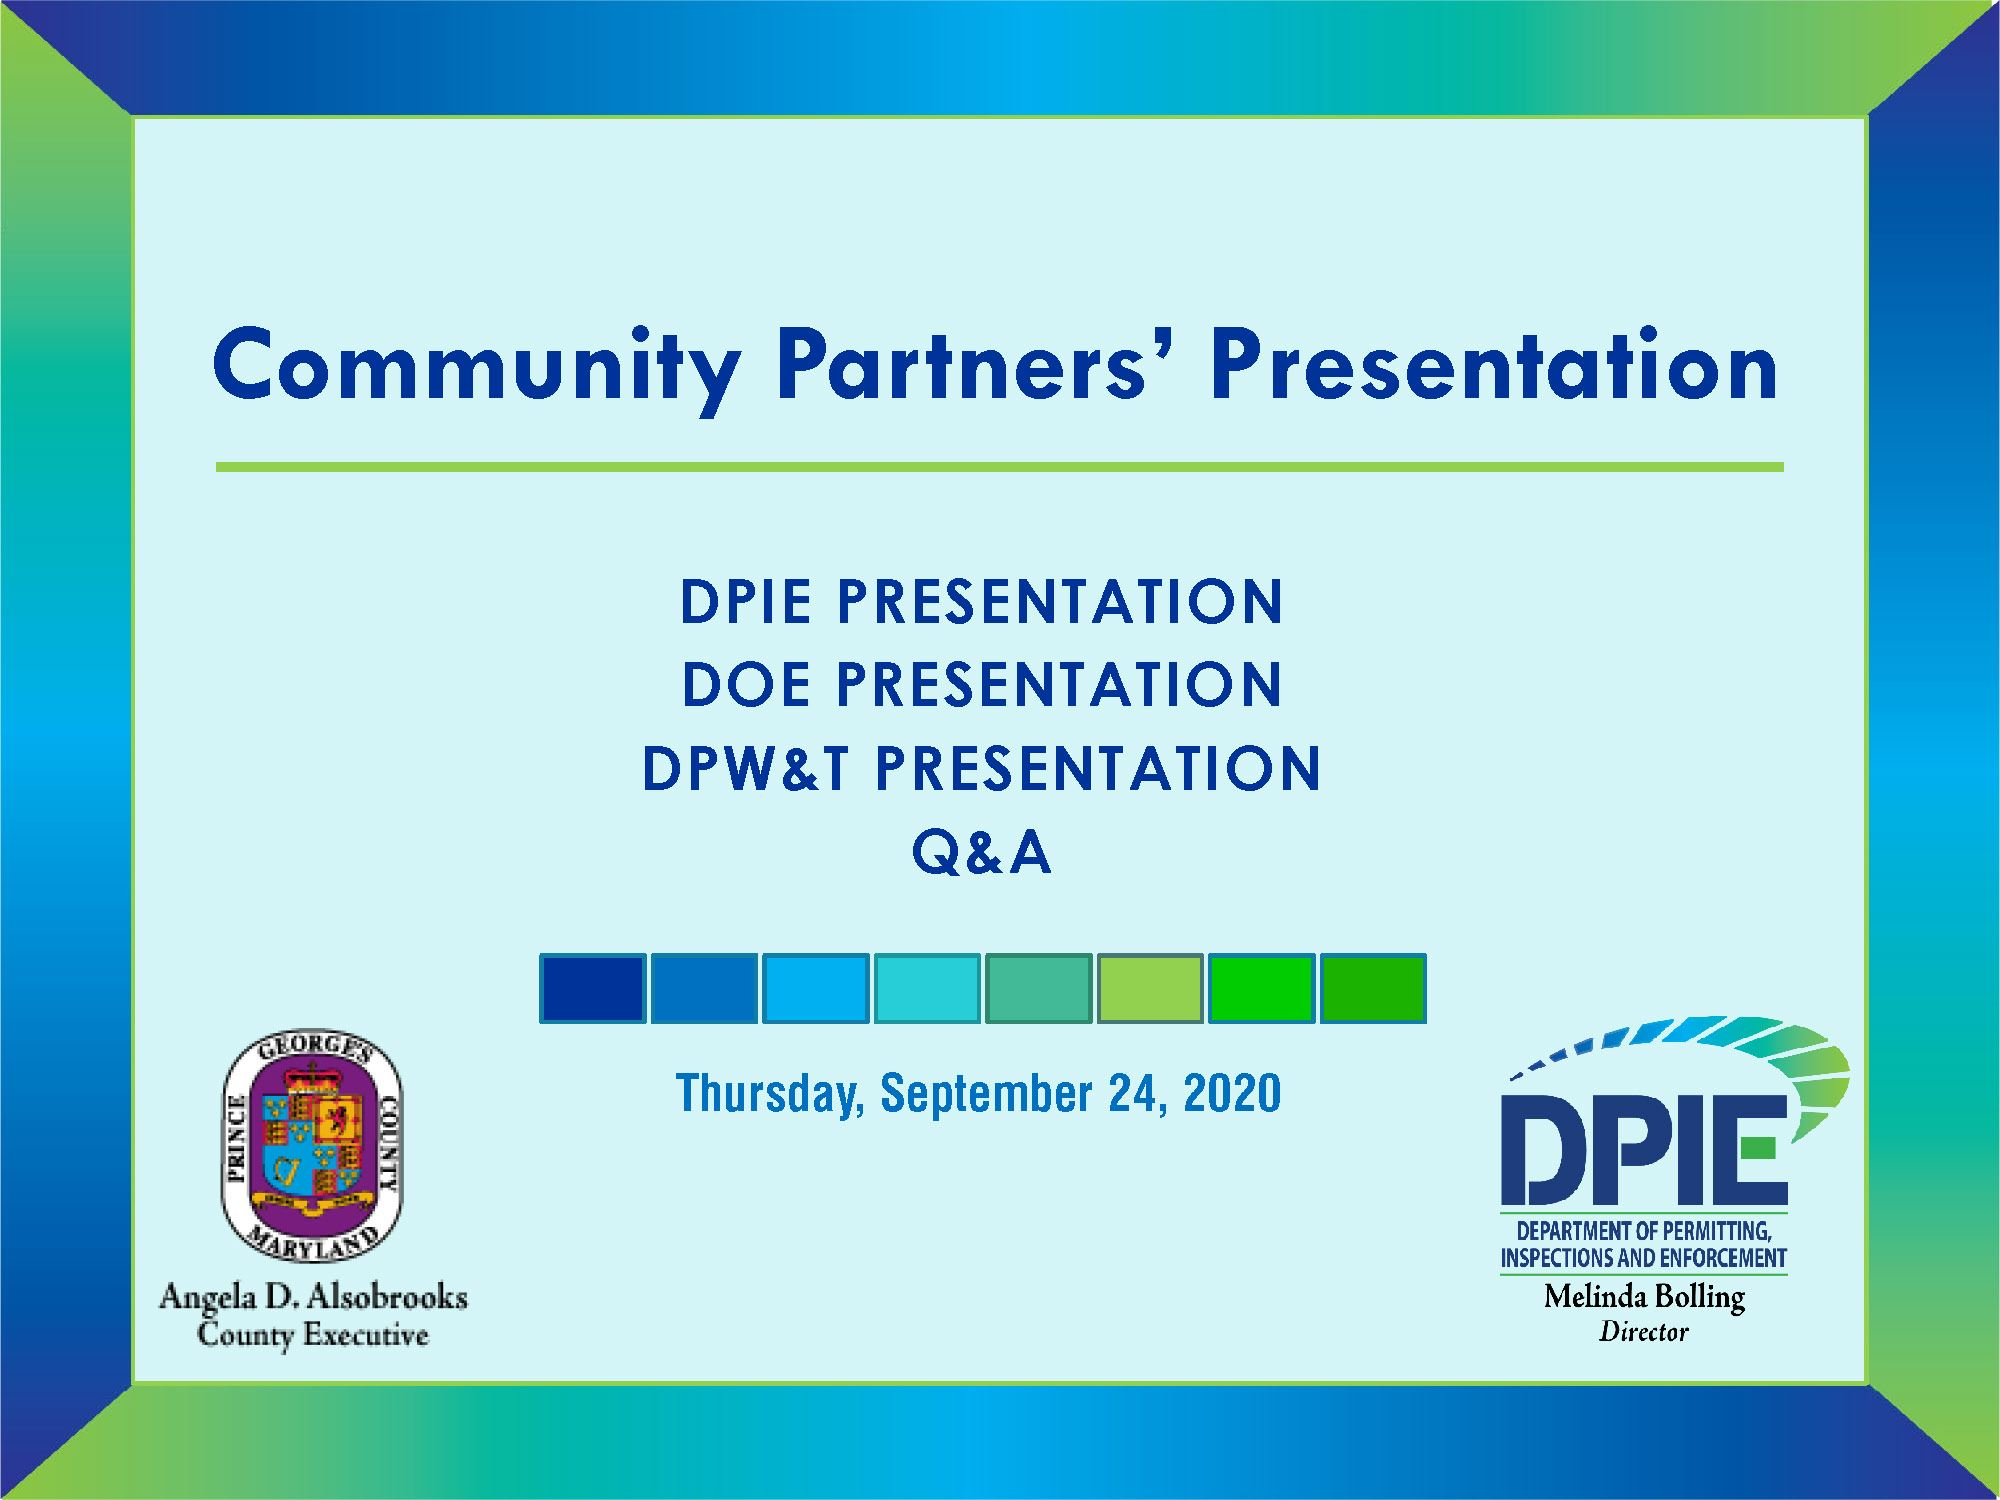 Fall Community Partners Opening Slide with DPIE, DoE and DPW&T presentation list